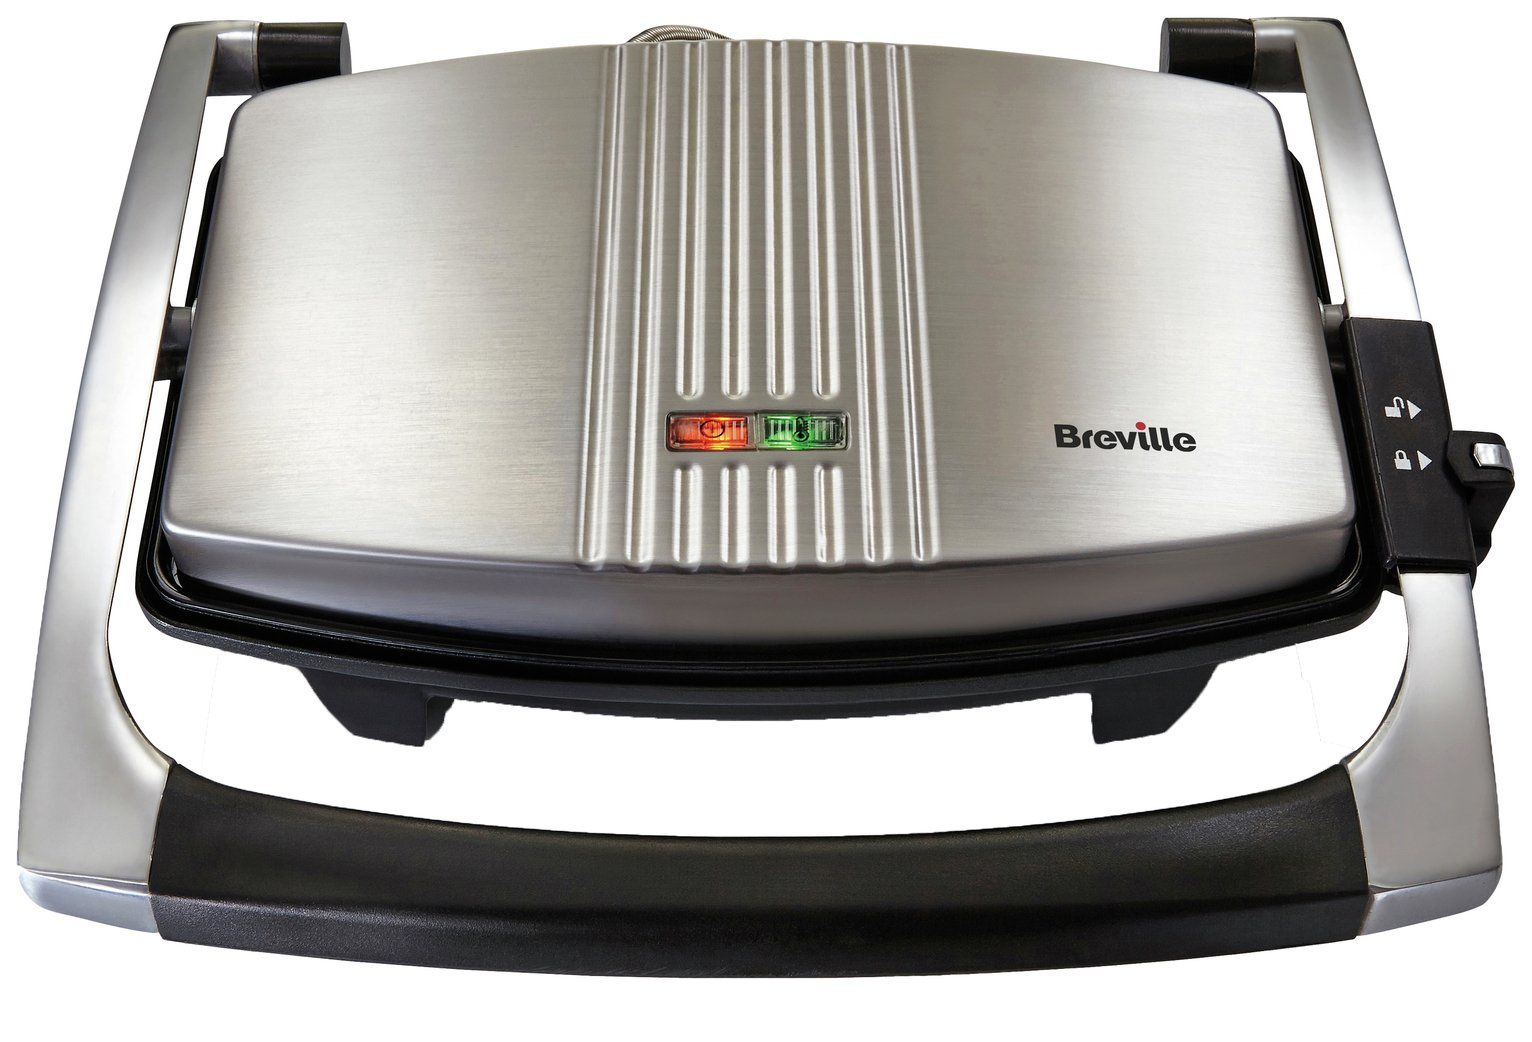 Breville - Toaster - VST025 - 3 Slice Sandwich Press - Stainless Steel from Breville